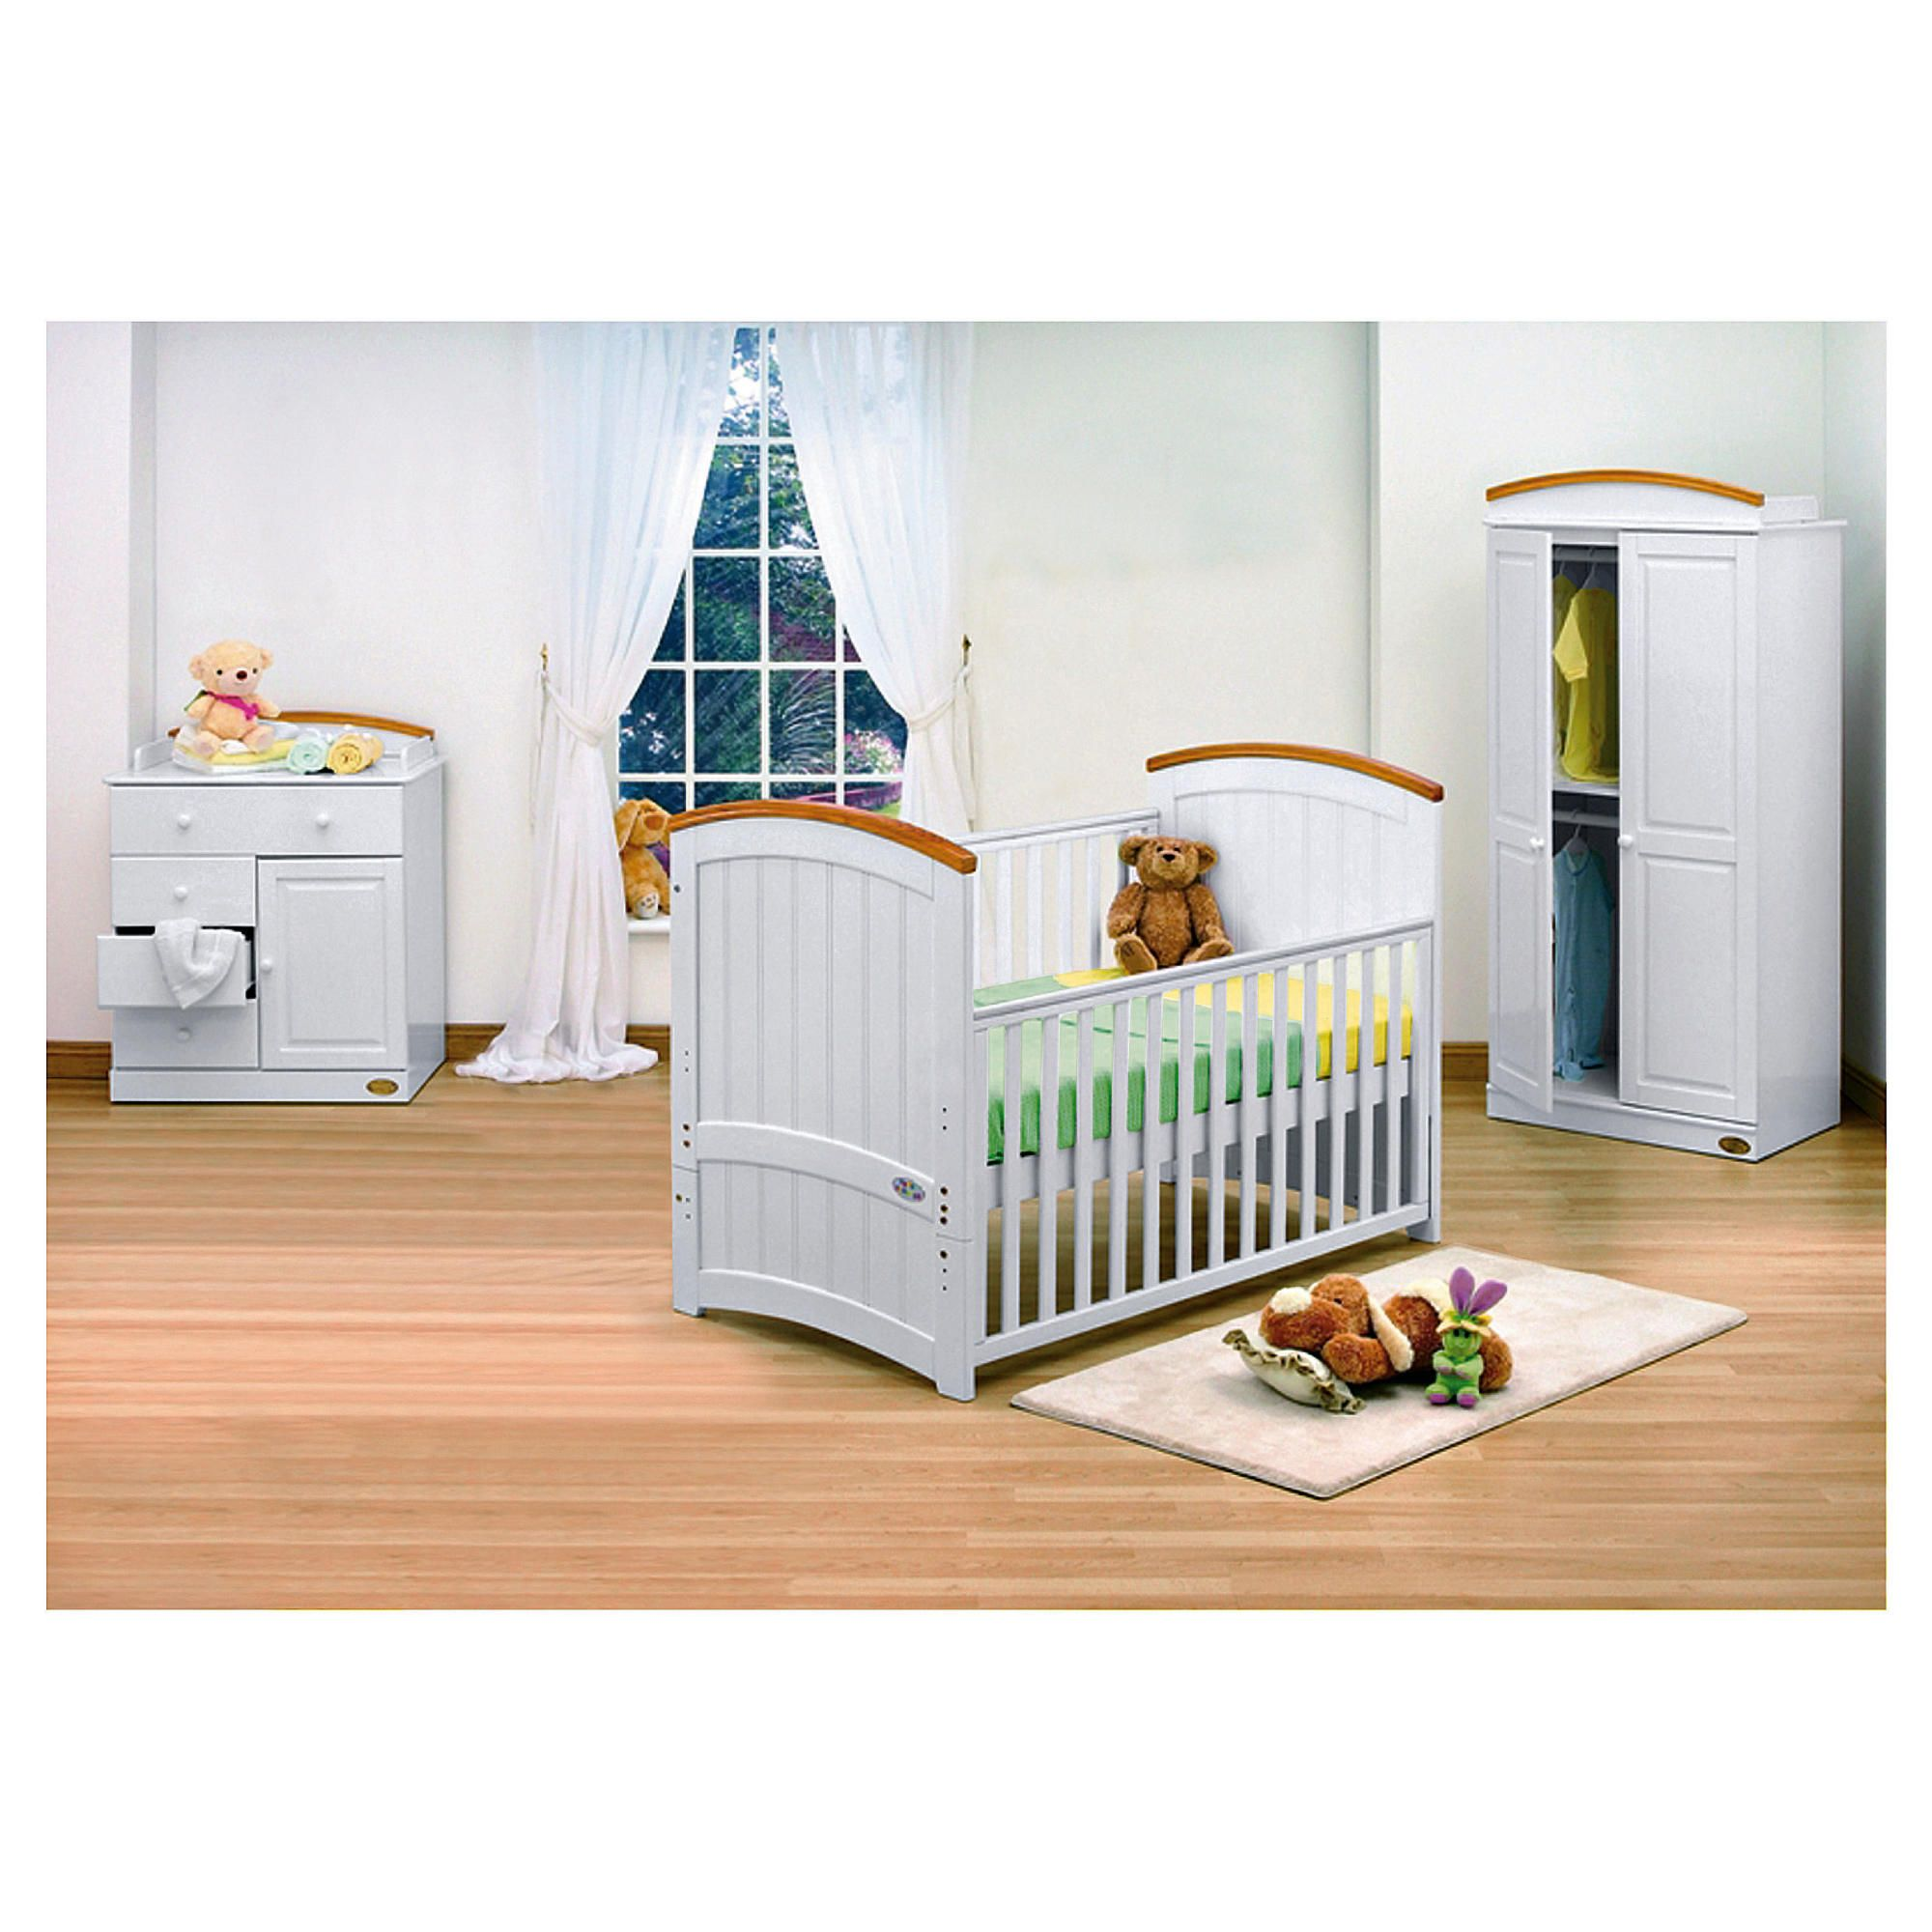 Tutti Bambini Barcelona 4 Piece Room Set, with Free Home Assembly at Tesco Direct